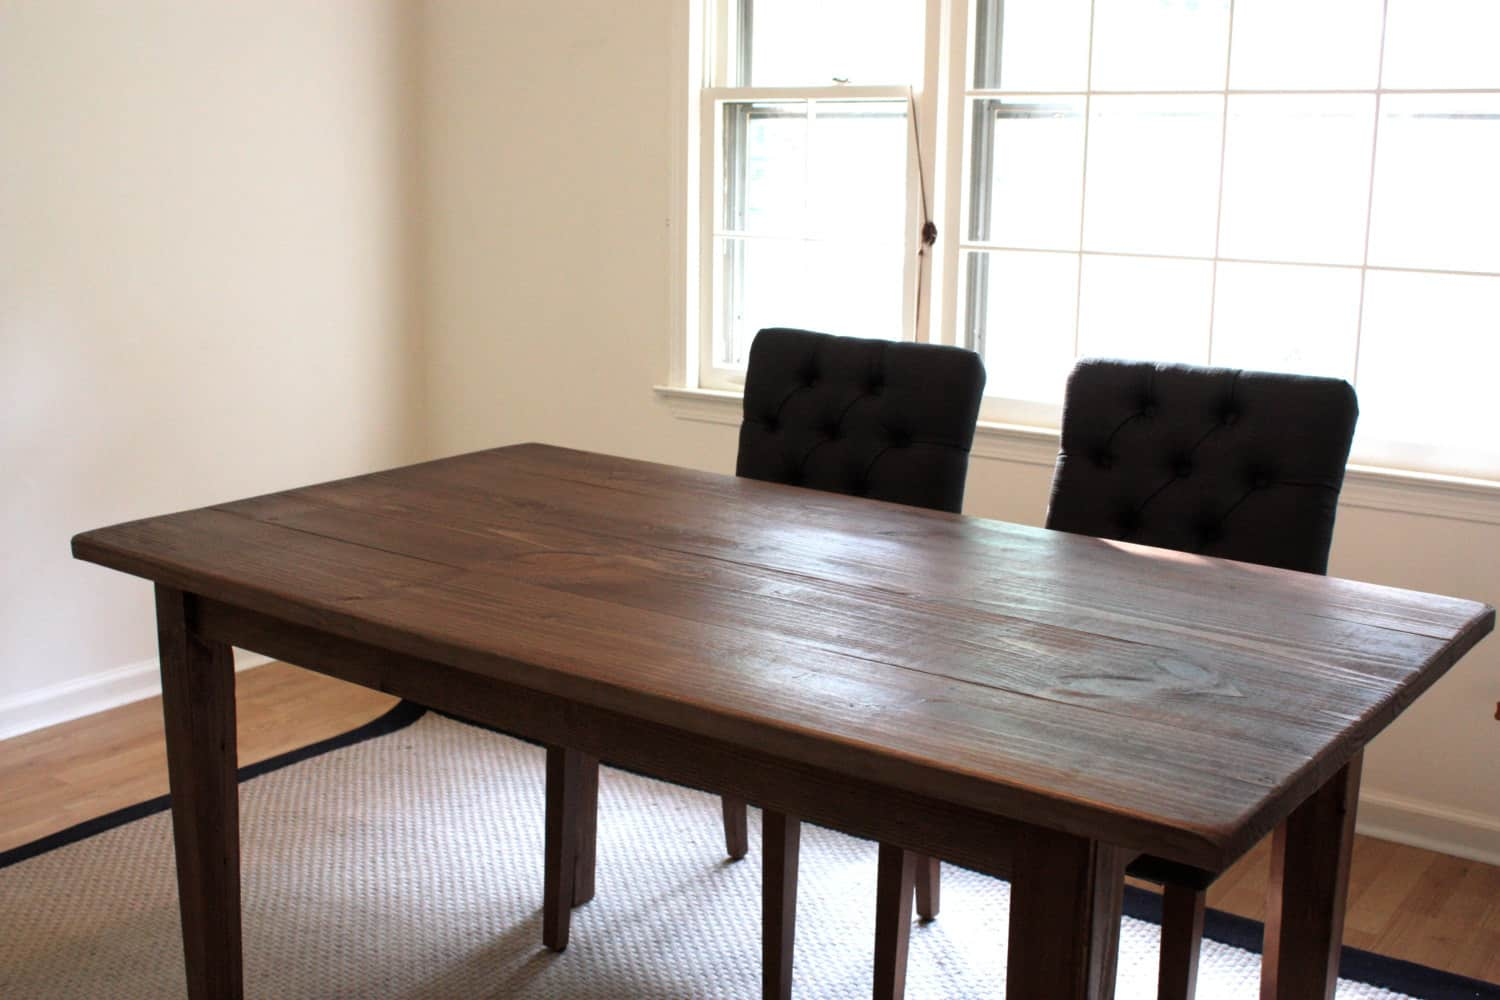 7 Reclaimed & Handmade Wood Dining Table Makers You Should ...